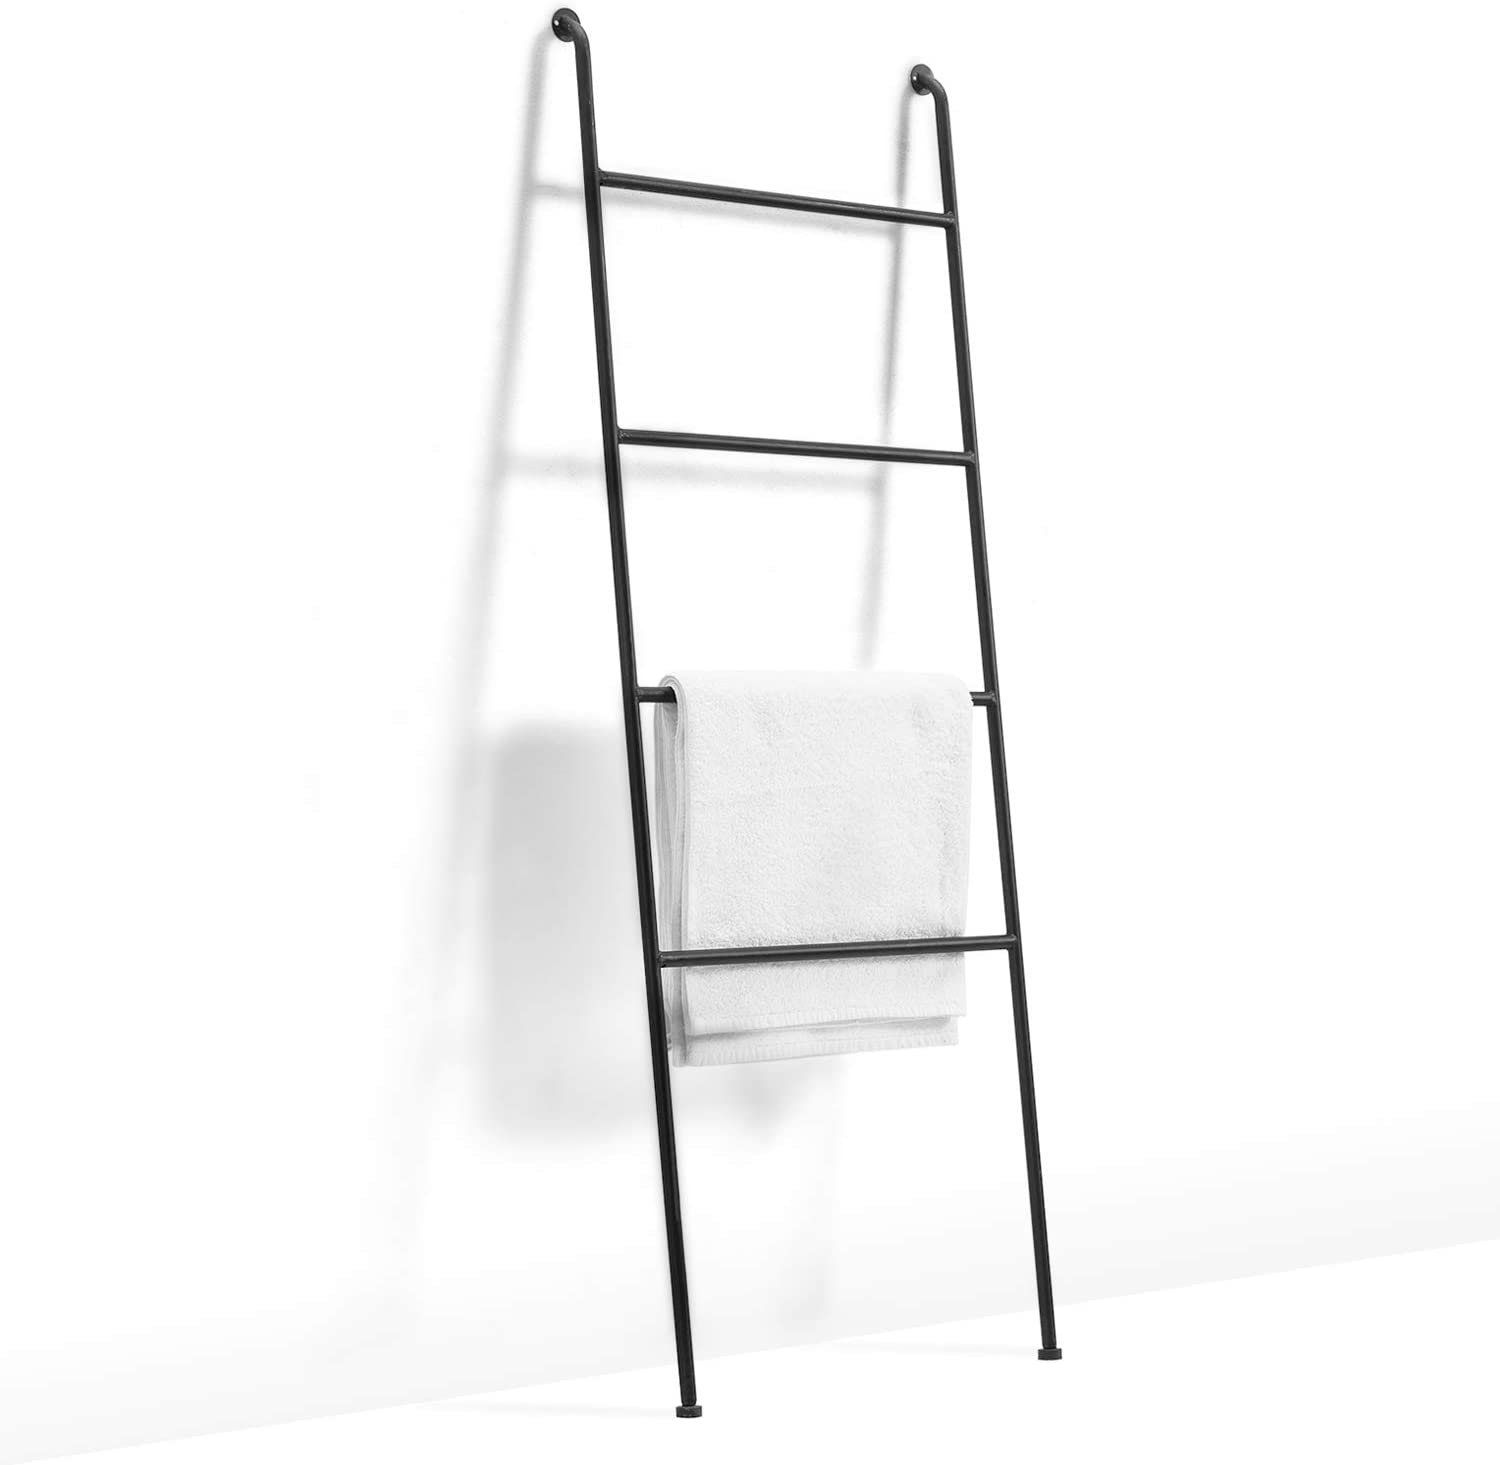 MyGift 4-Foot Wall-Leaning Matte Black Metal Towel Ladder Rack with 4 Storage Rungs